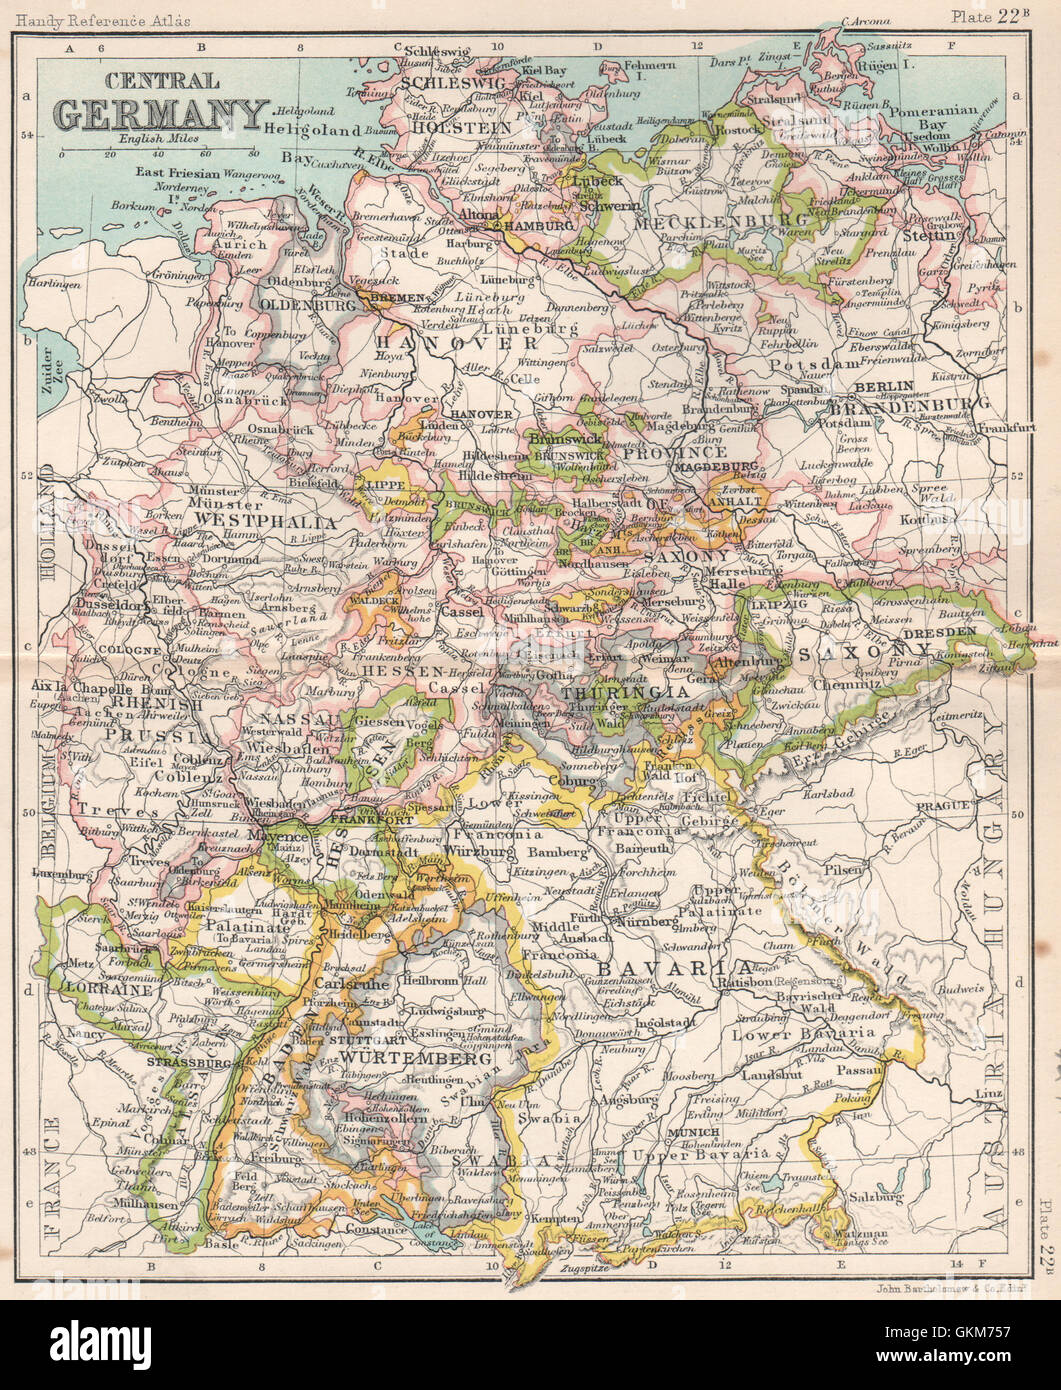 Freising Germany Map.Central Germany Map Stock Photos Central Germany Map Stock Images